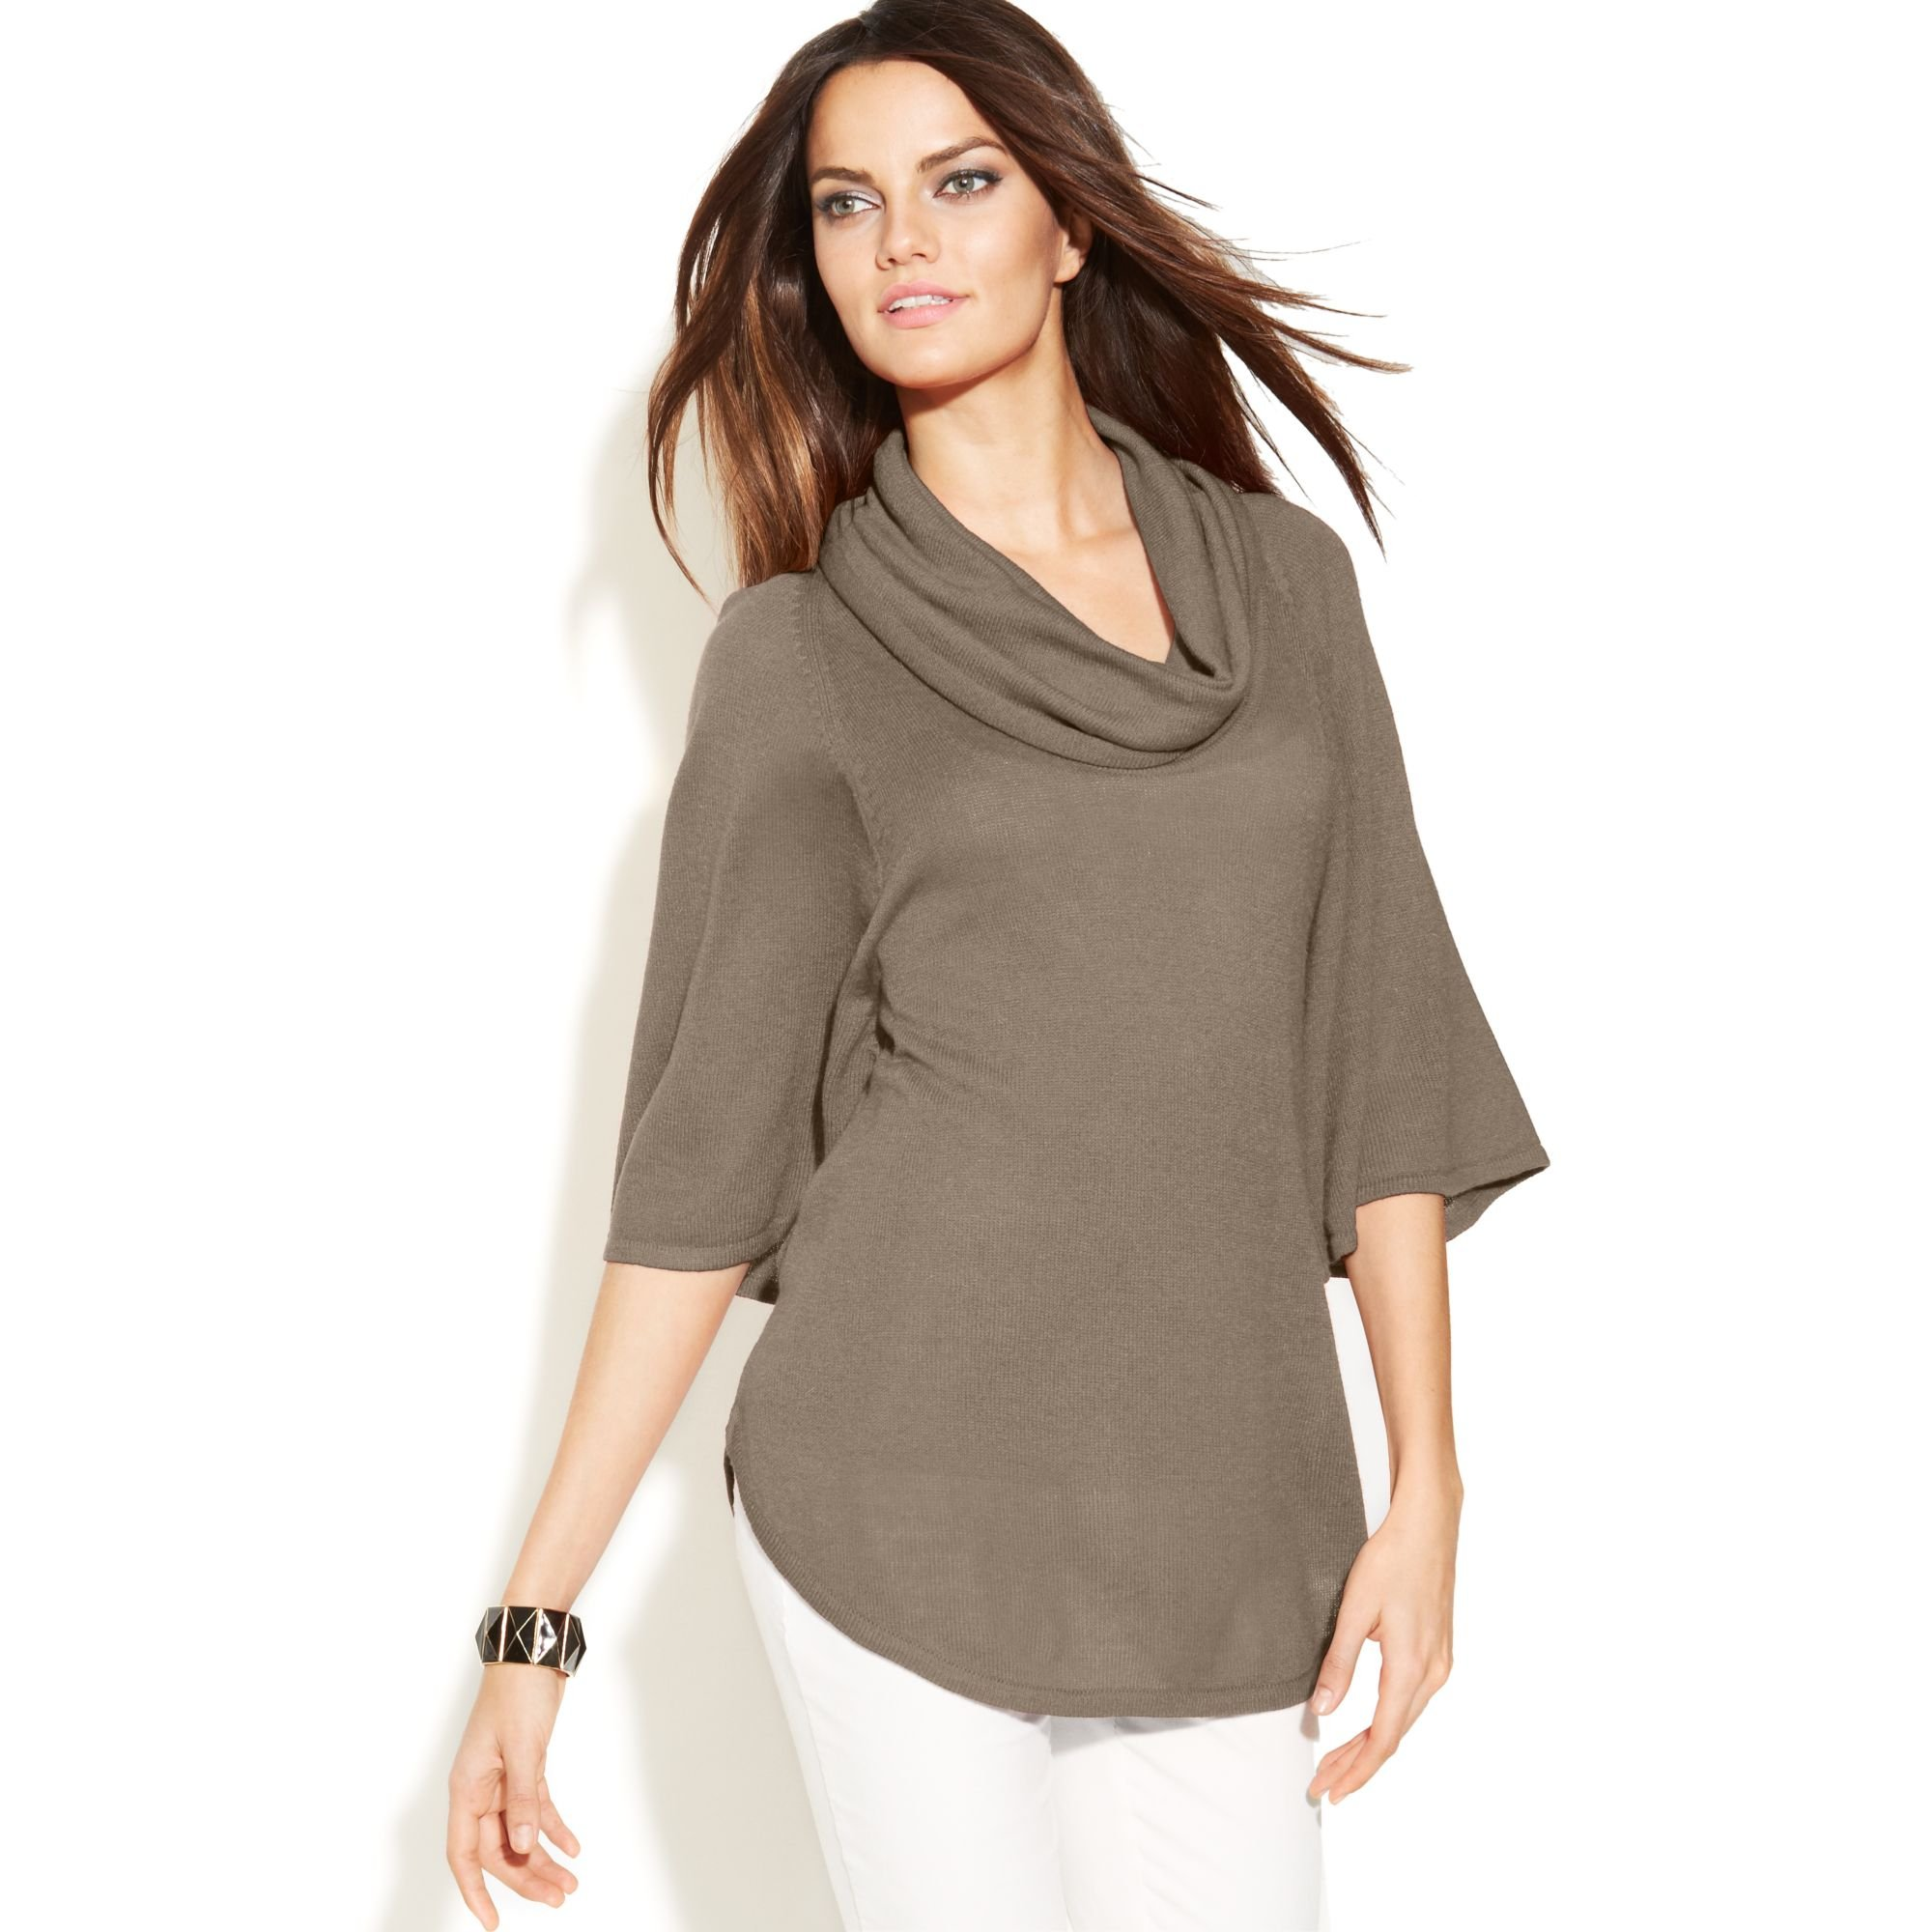 Inc international concepts Cowl-Neck Batwing-Sleeve Sweater in ...